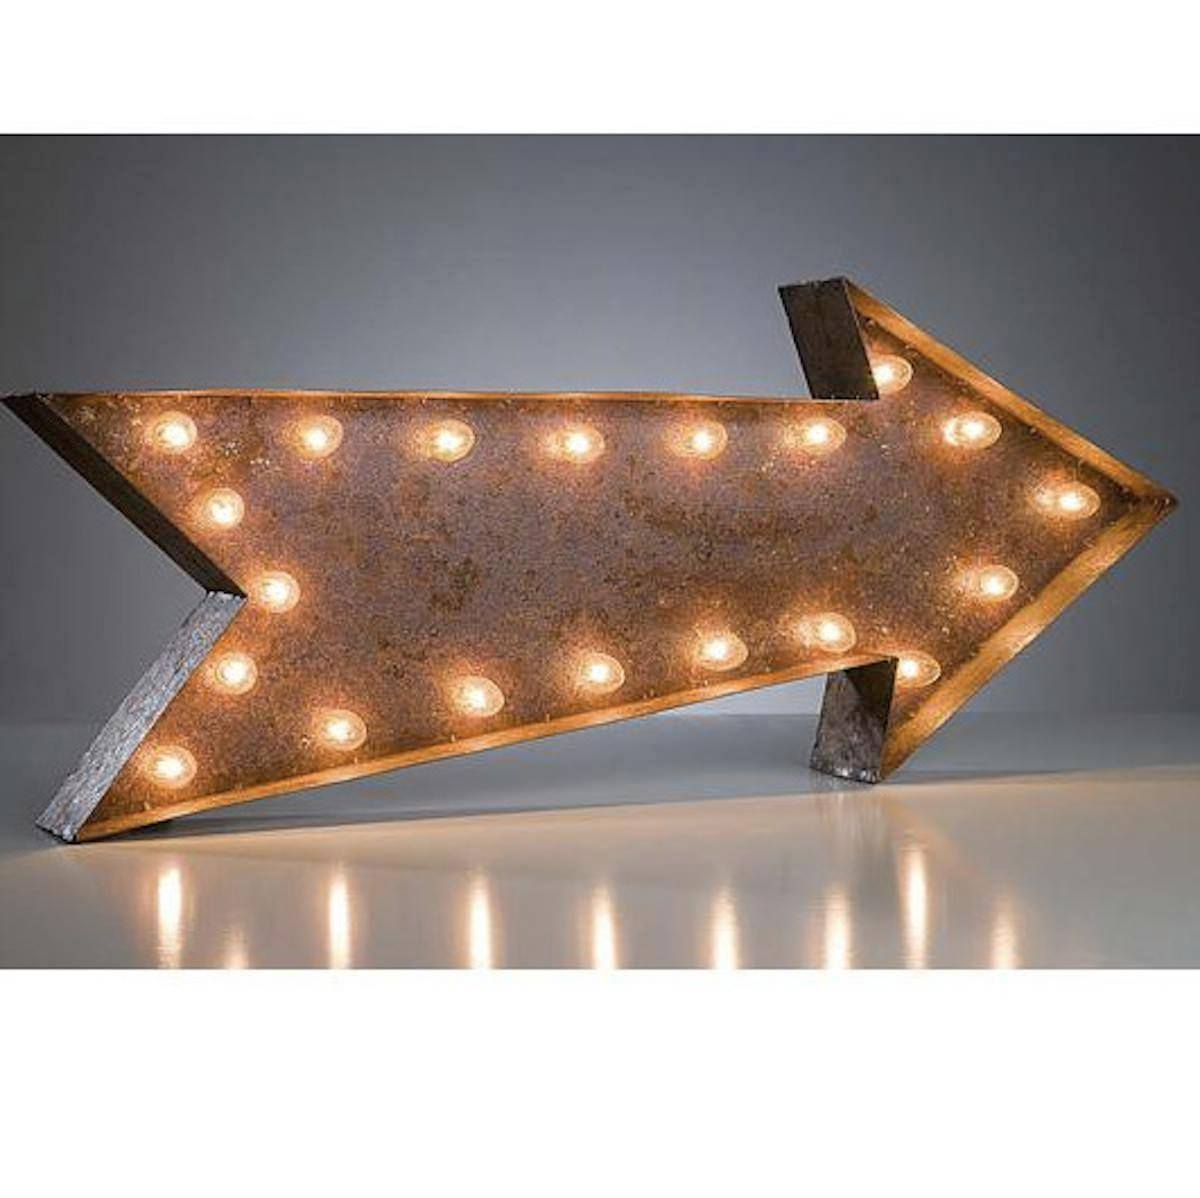 ... Marquee Symbol Lights - 36 Large Arrow Vintage Marquee Sign With Lights  (Rustic) ...